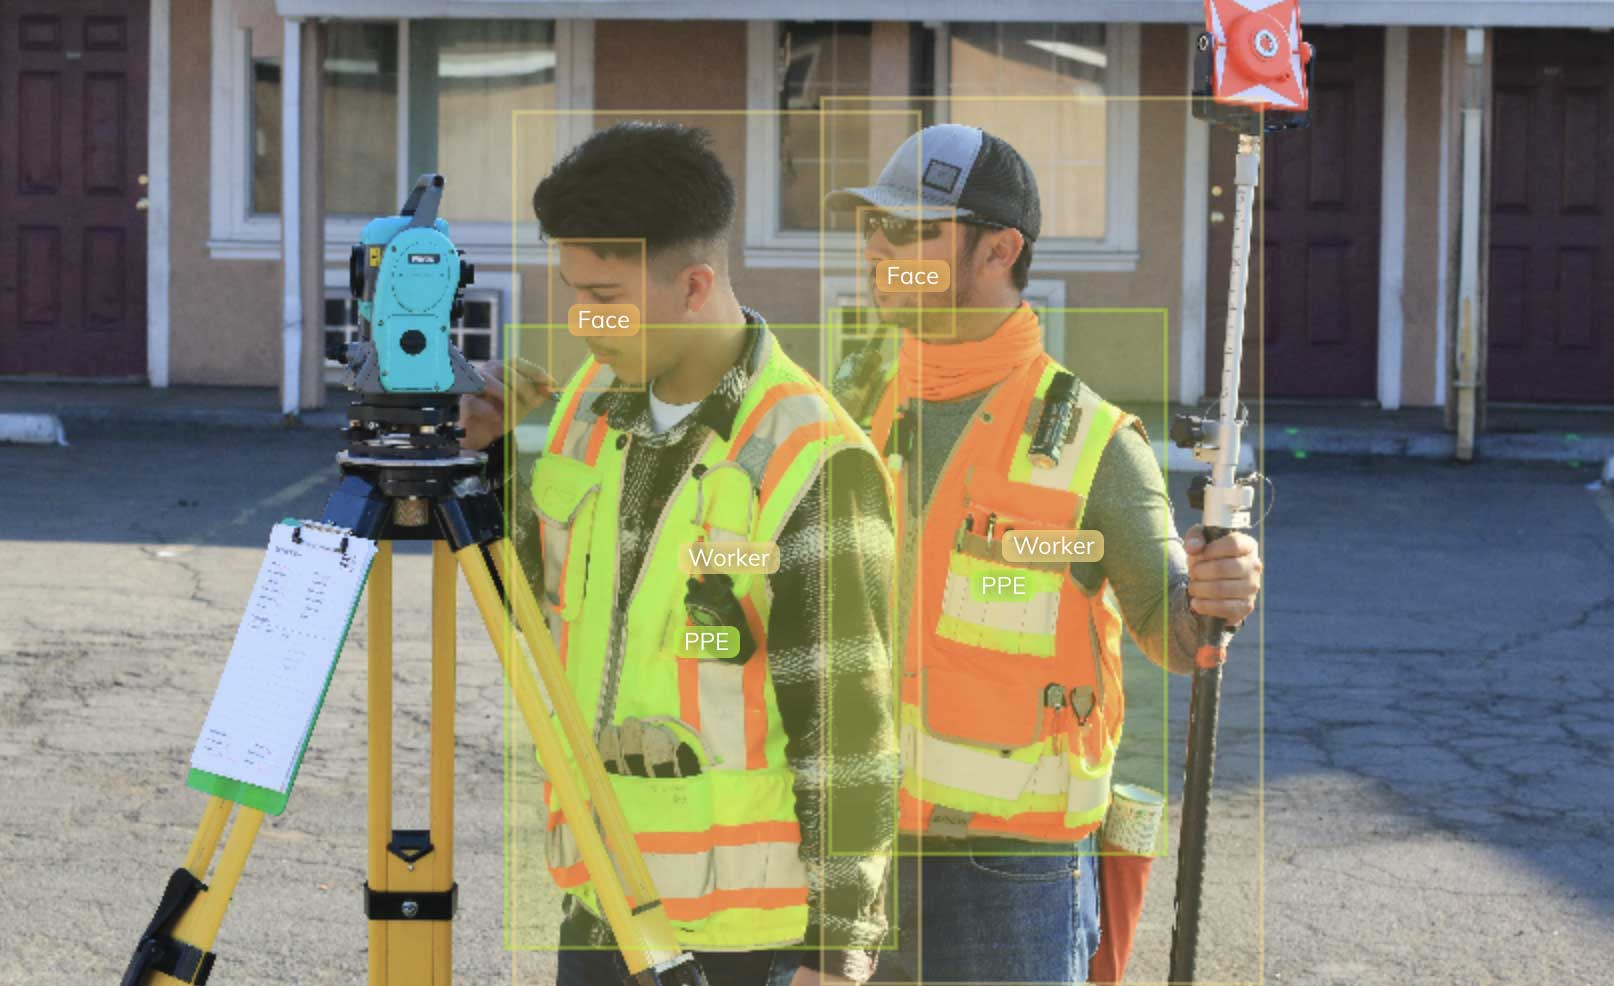 worker ppe detection in computer vision